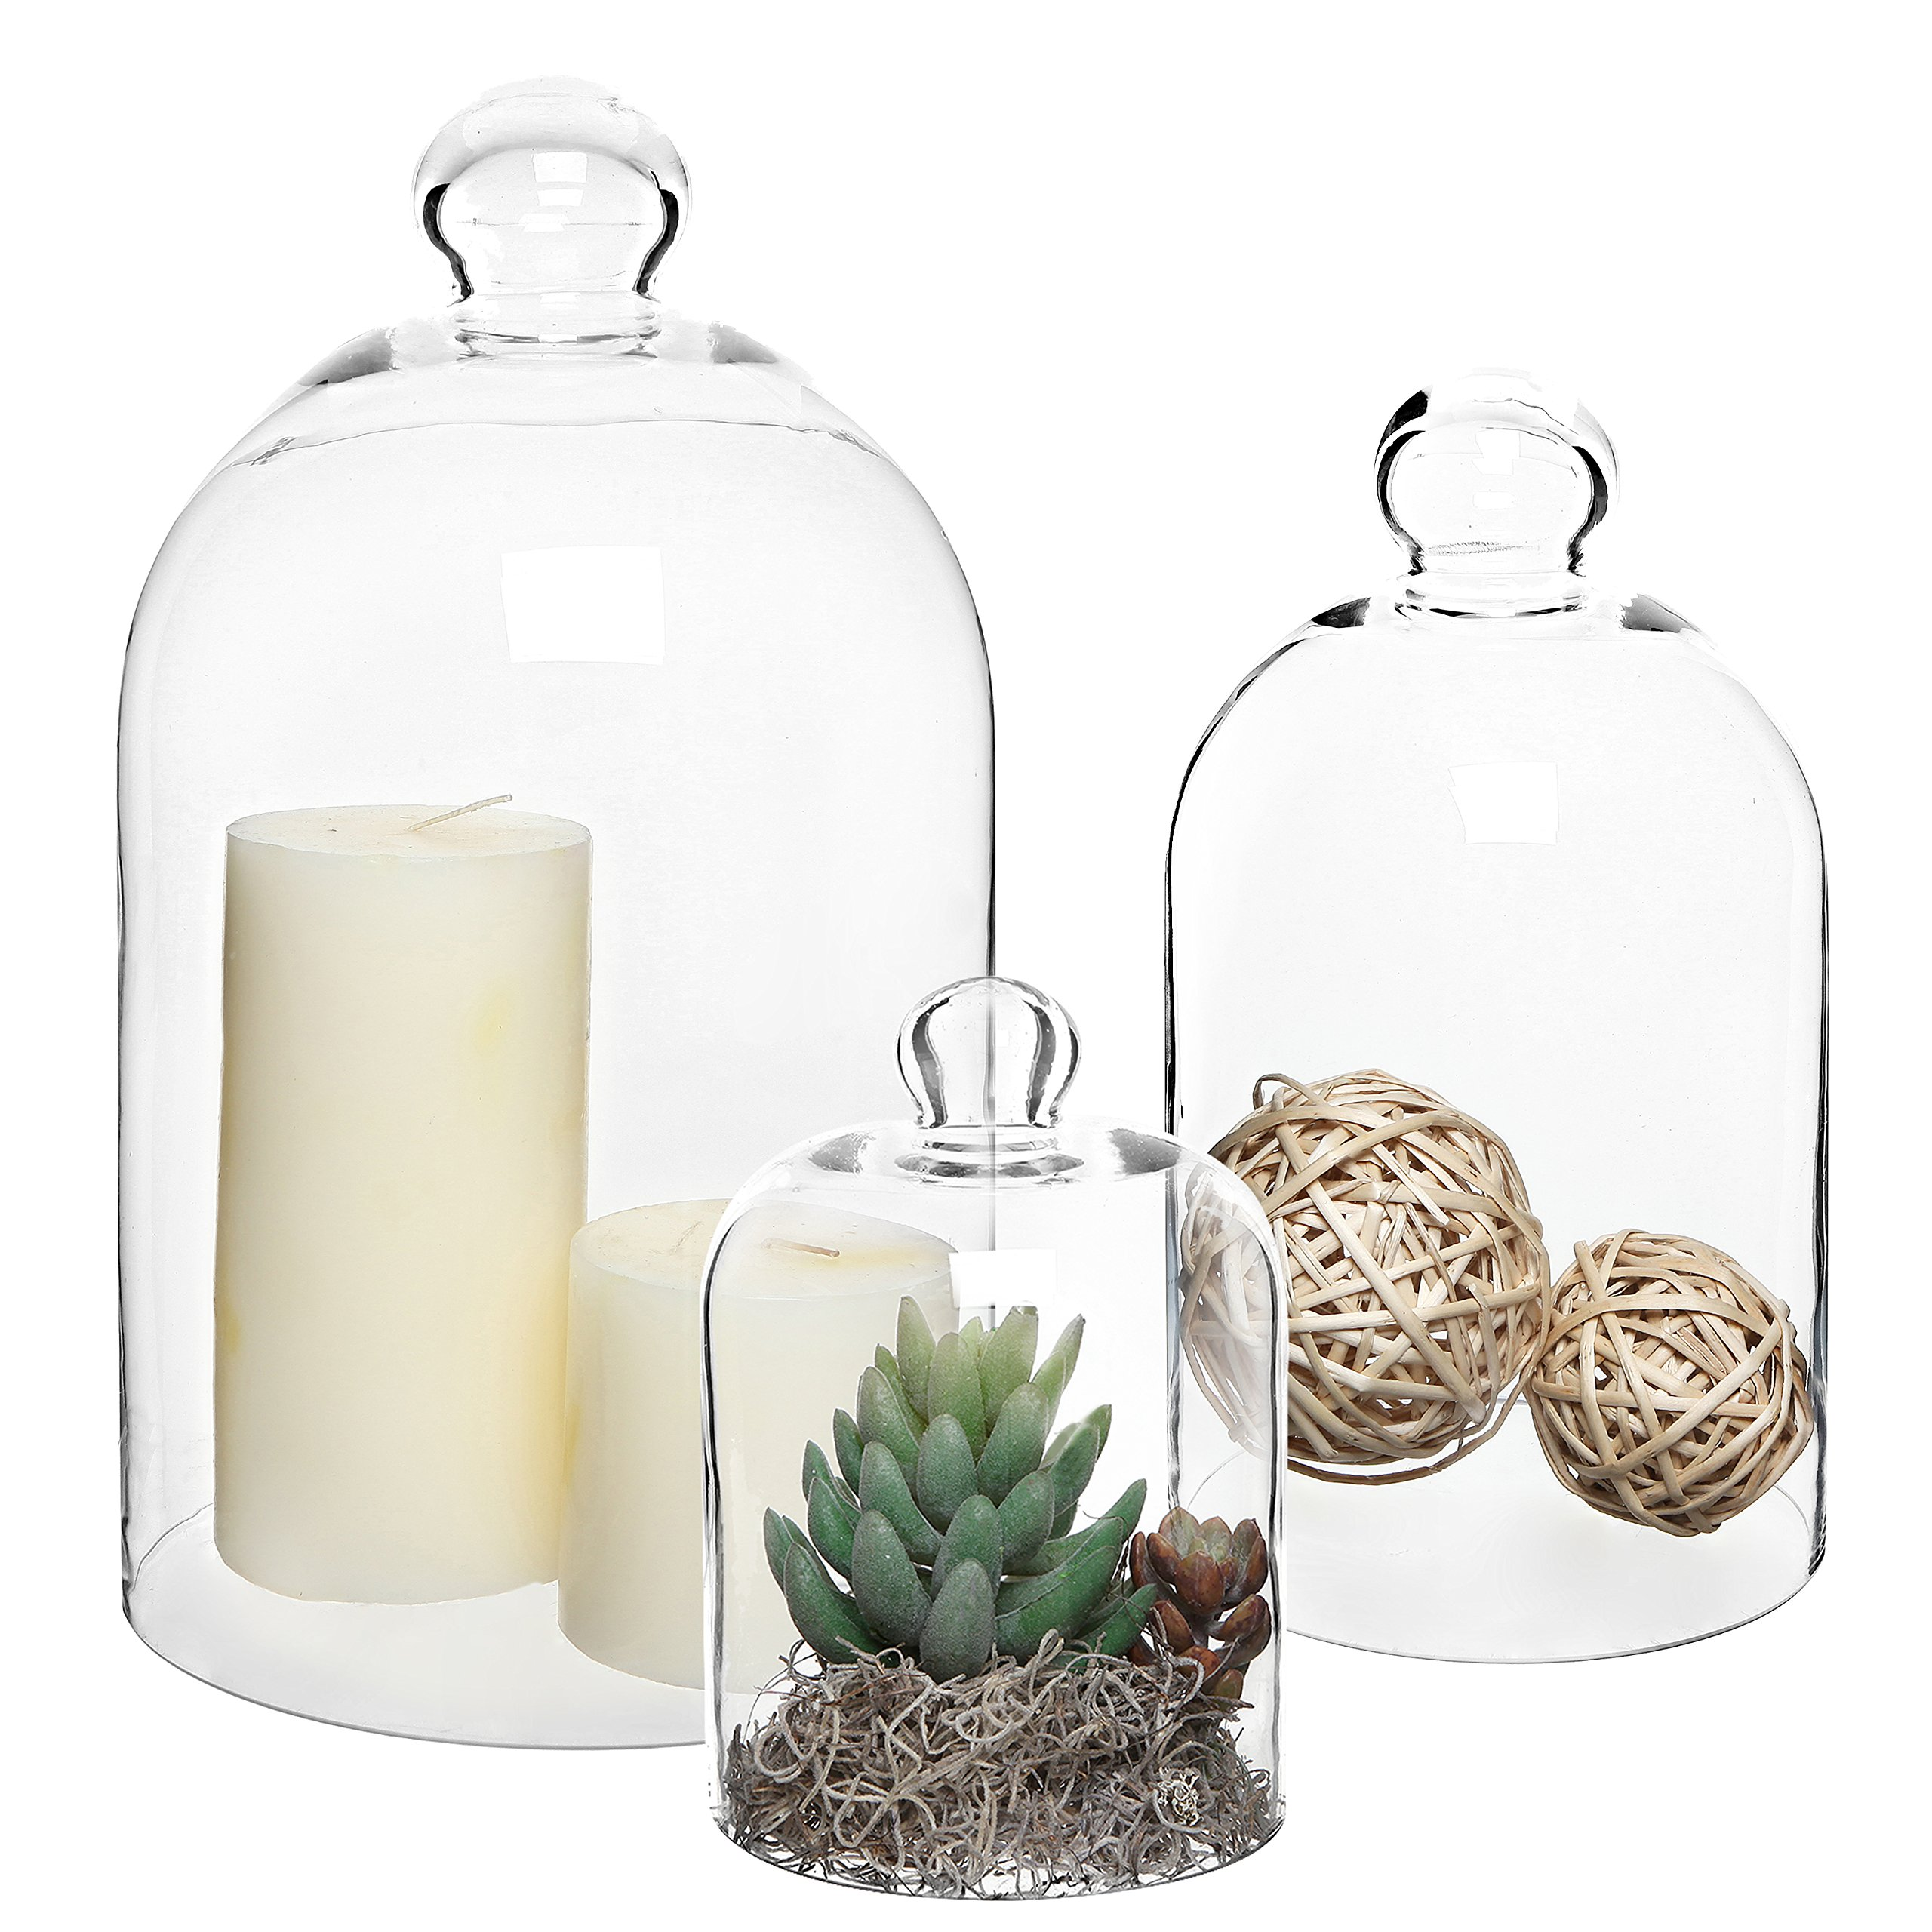 MyGift Set of 3 Decorative Clear Glass Apothecary Cloche Bell Jars/Centerpiece Dome Display by MyGift